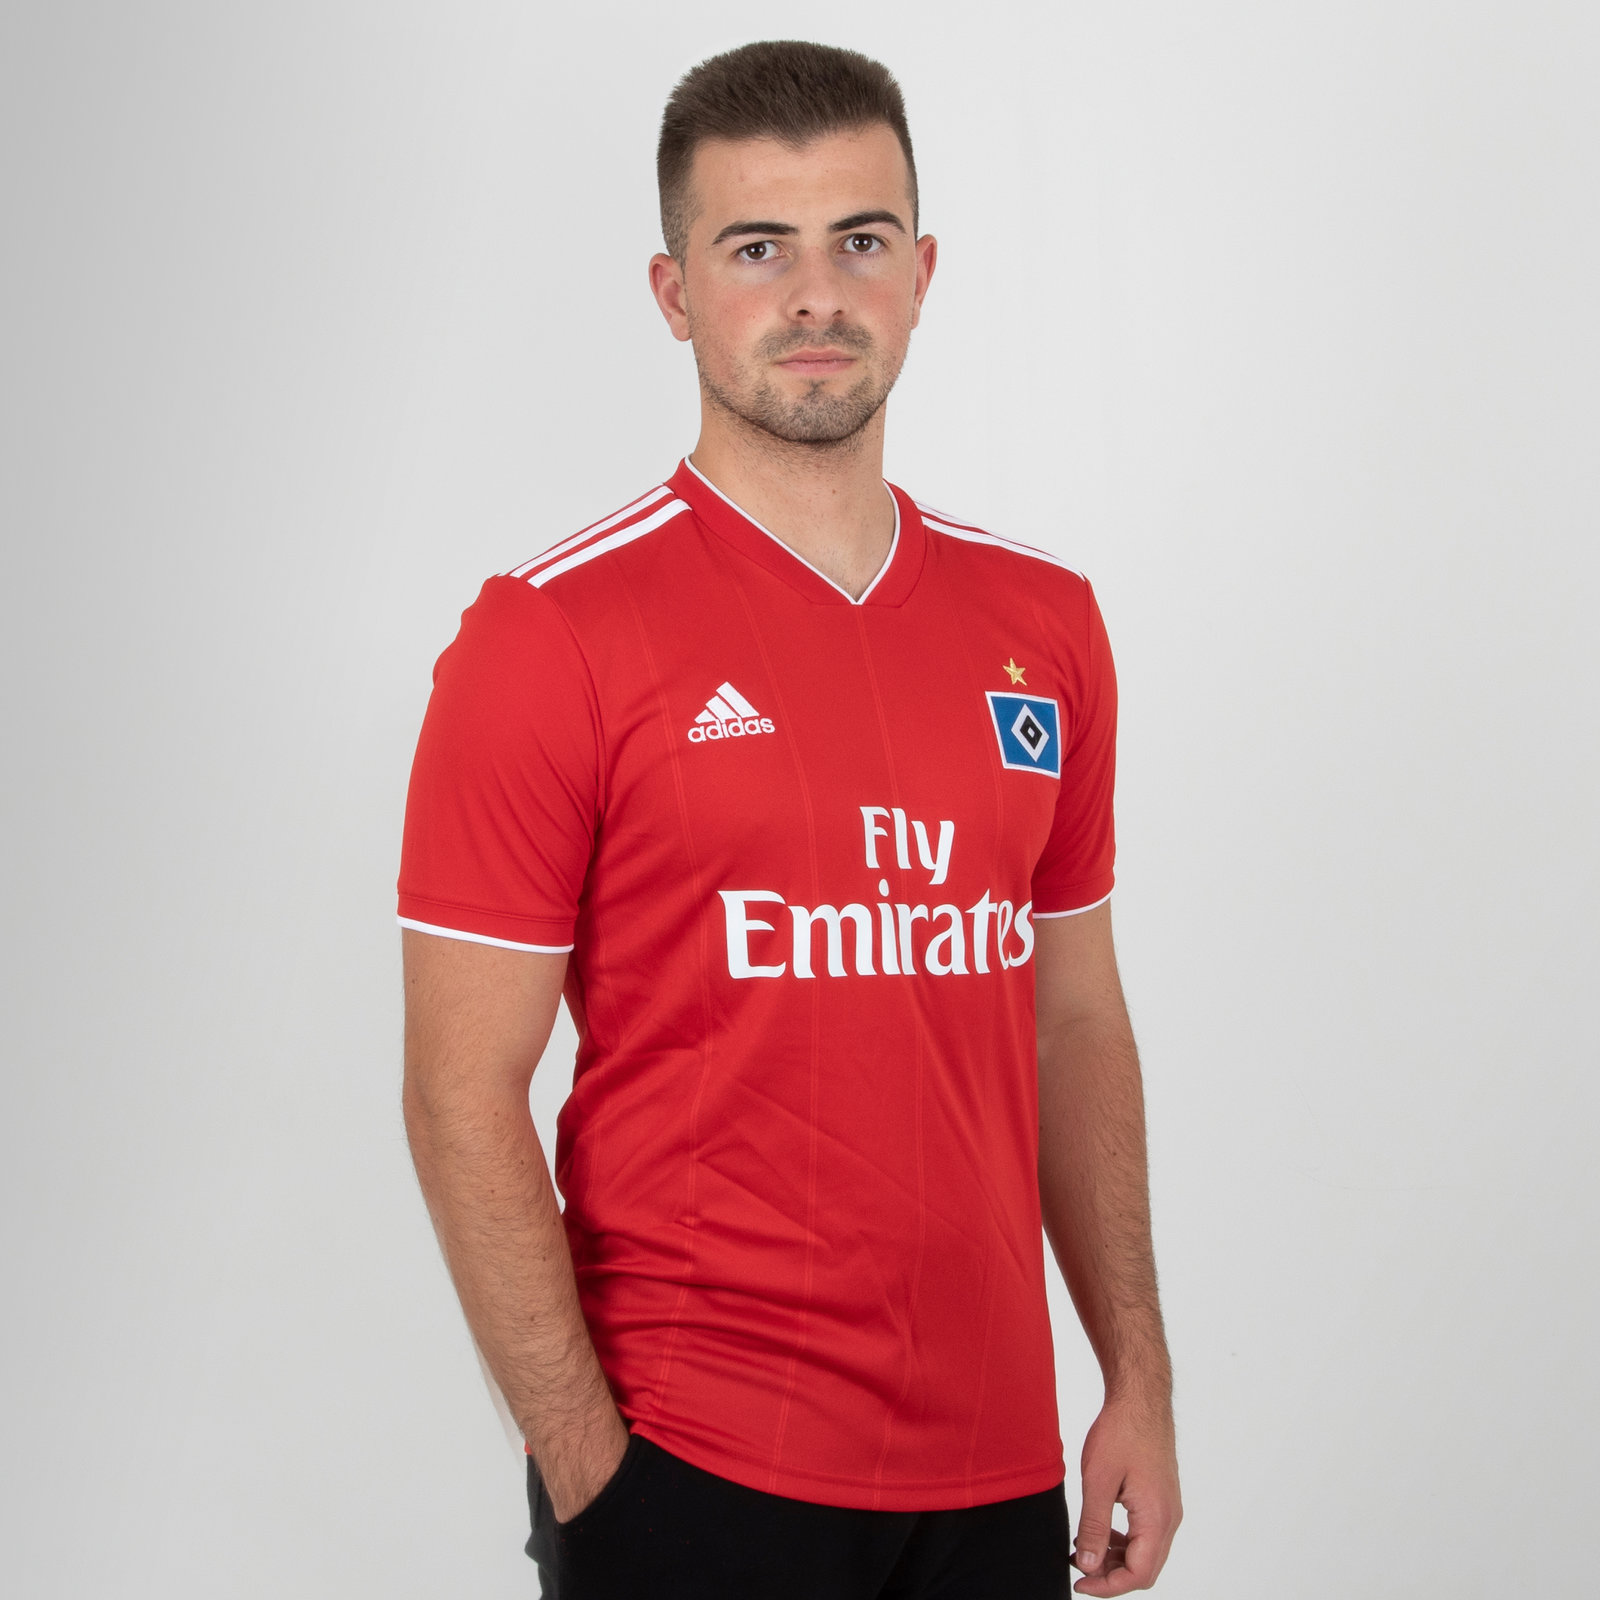 Hamburg Away shirt